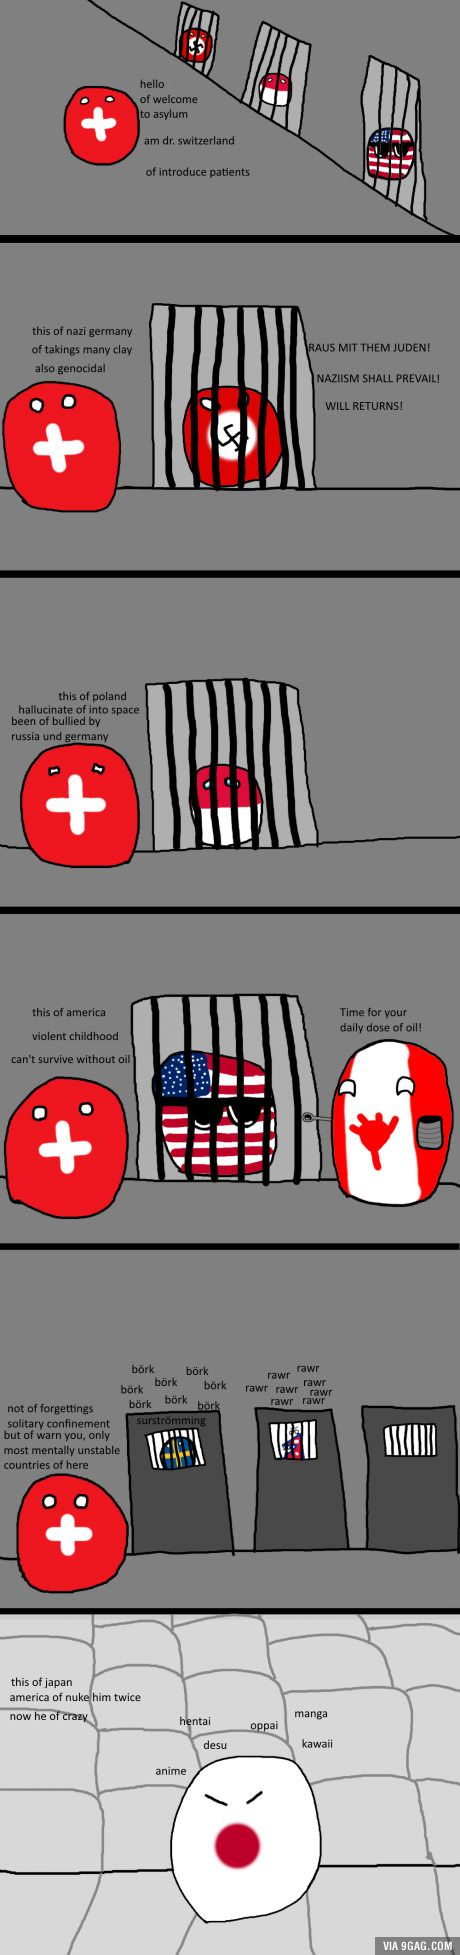 Me meaning of polish flag - Me And Friends